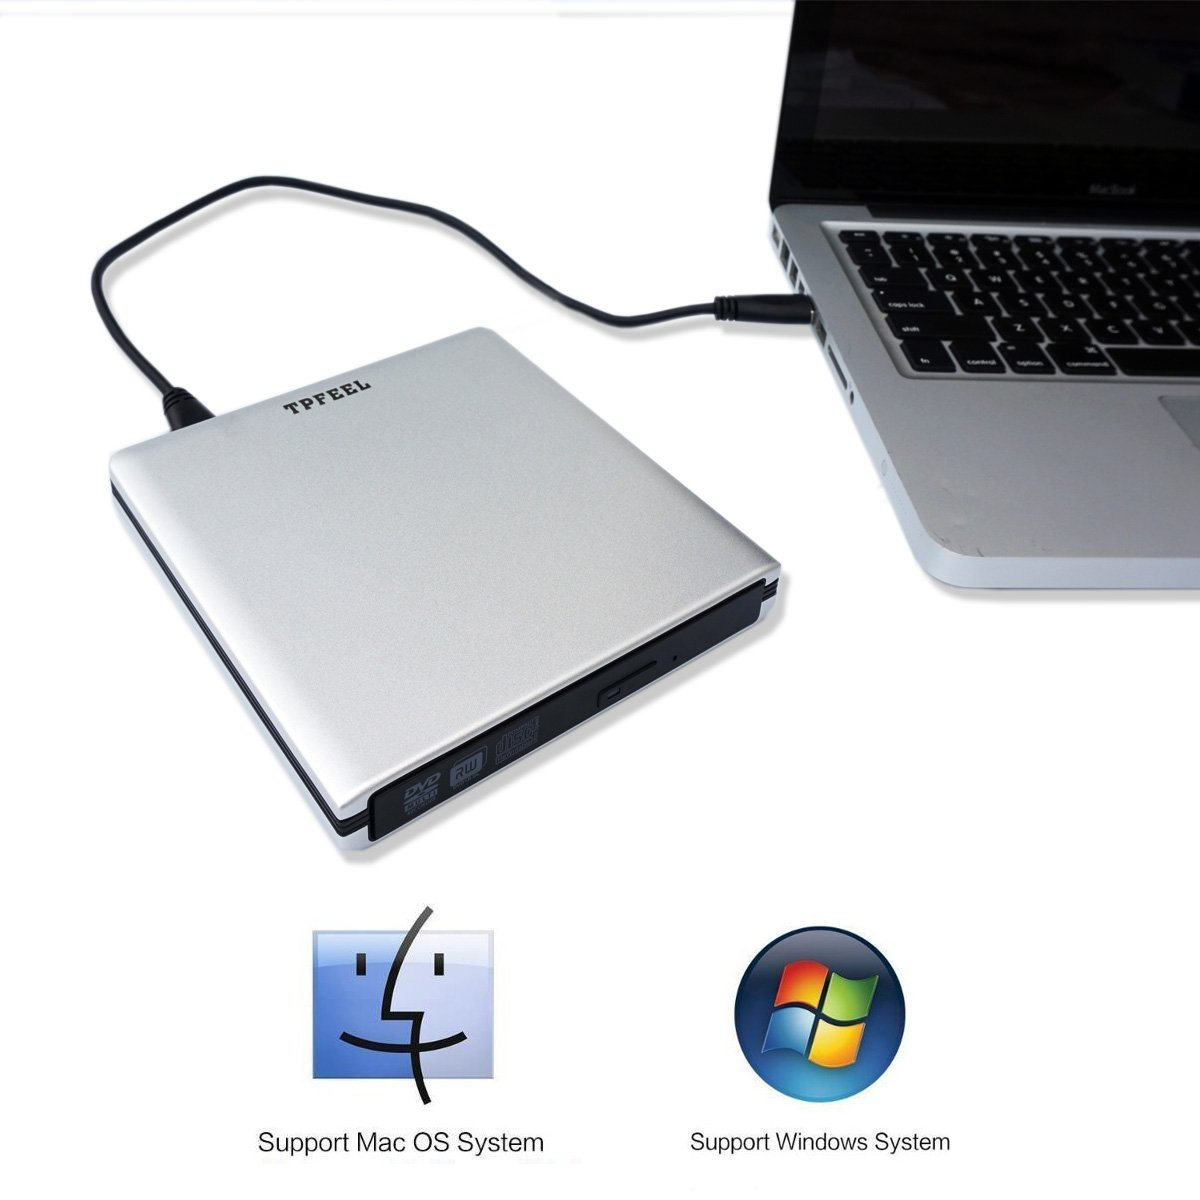 Cheap Lightscribe Dvd R Color Find Deals On External M Tech Rw Get Quotations Usb30 Usb C Cd Burner Drivetpfeel Aluminum Portable Type